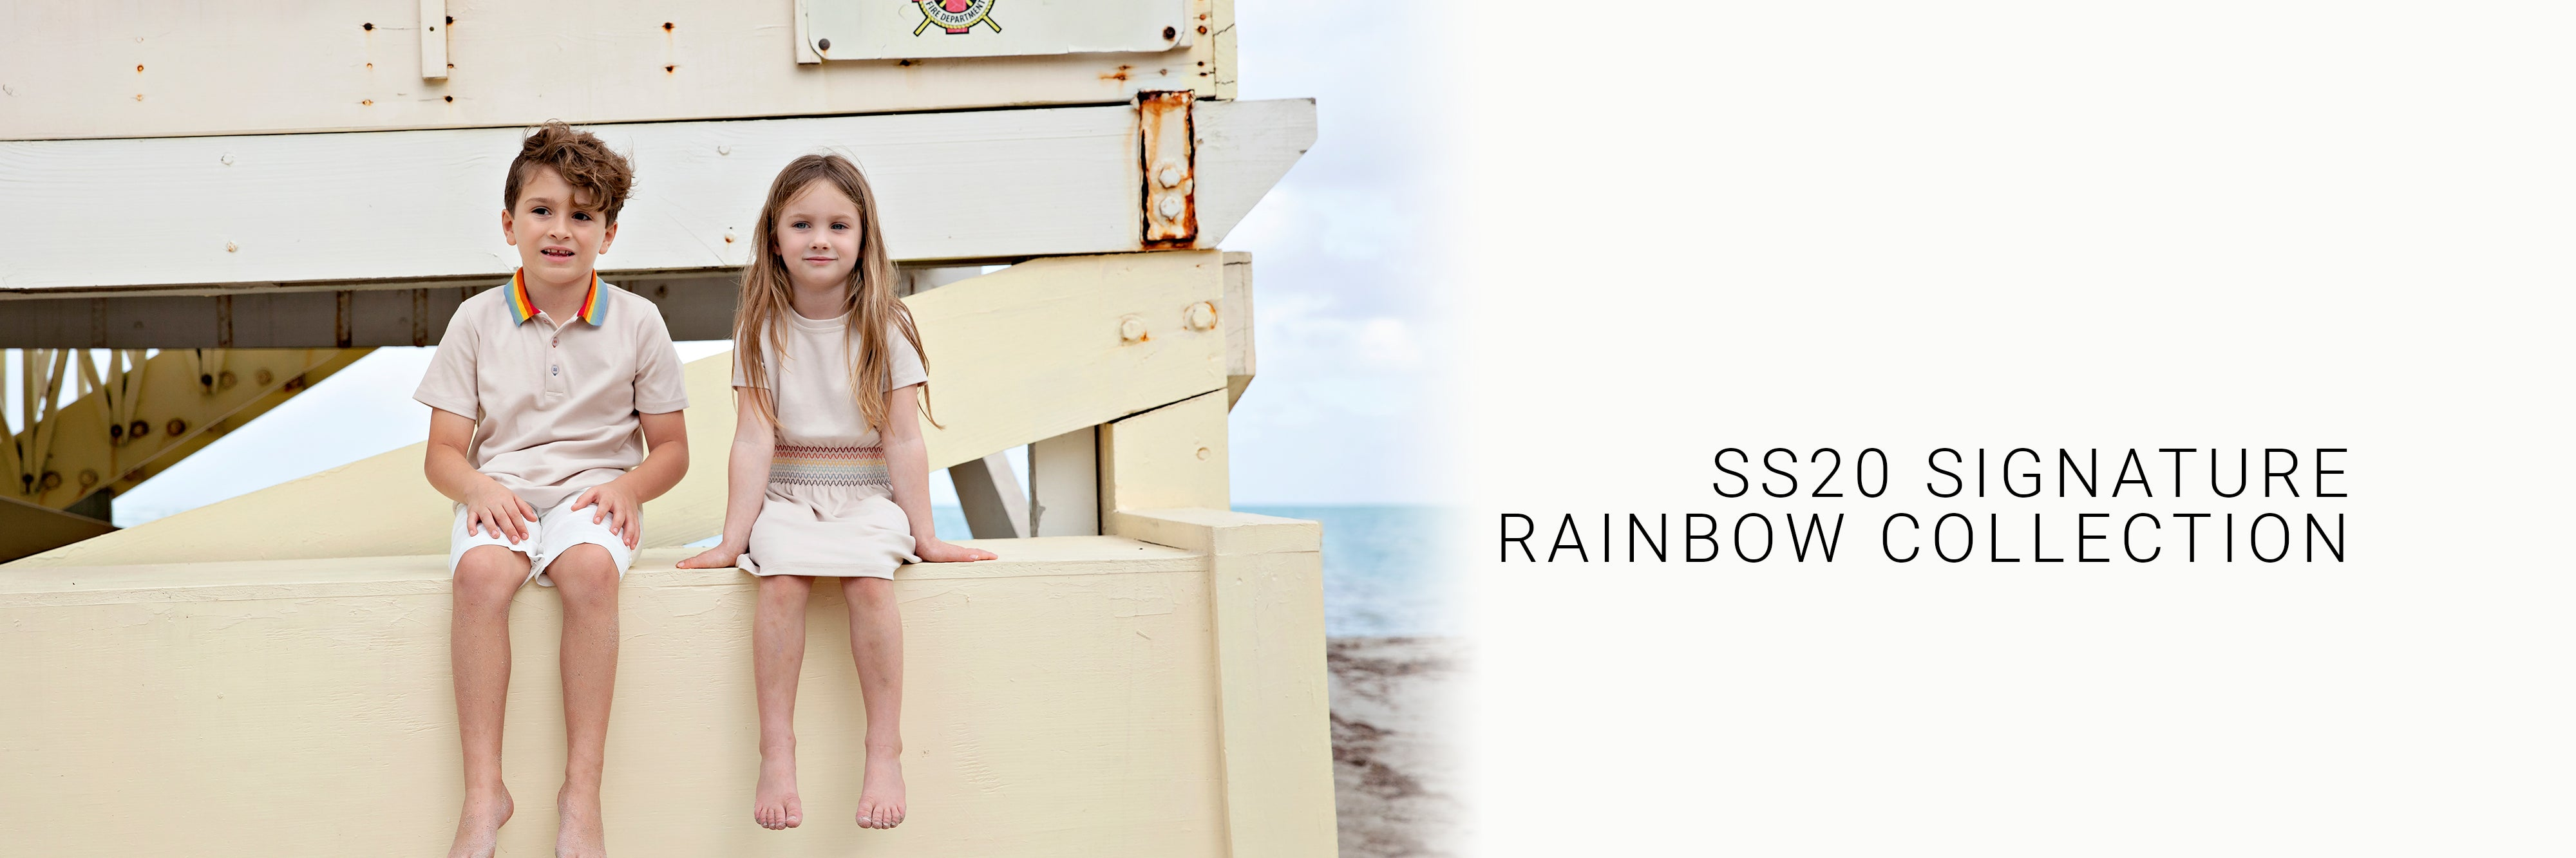 SS20 Signature Rainbow Collection